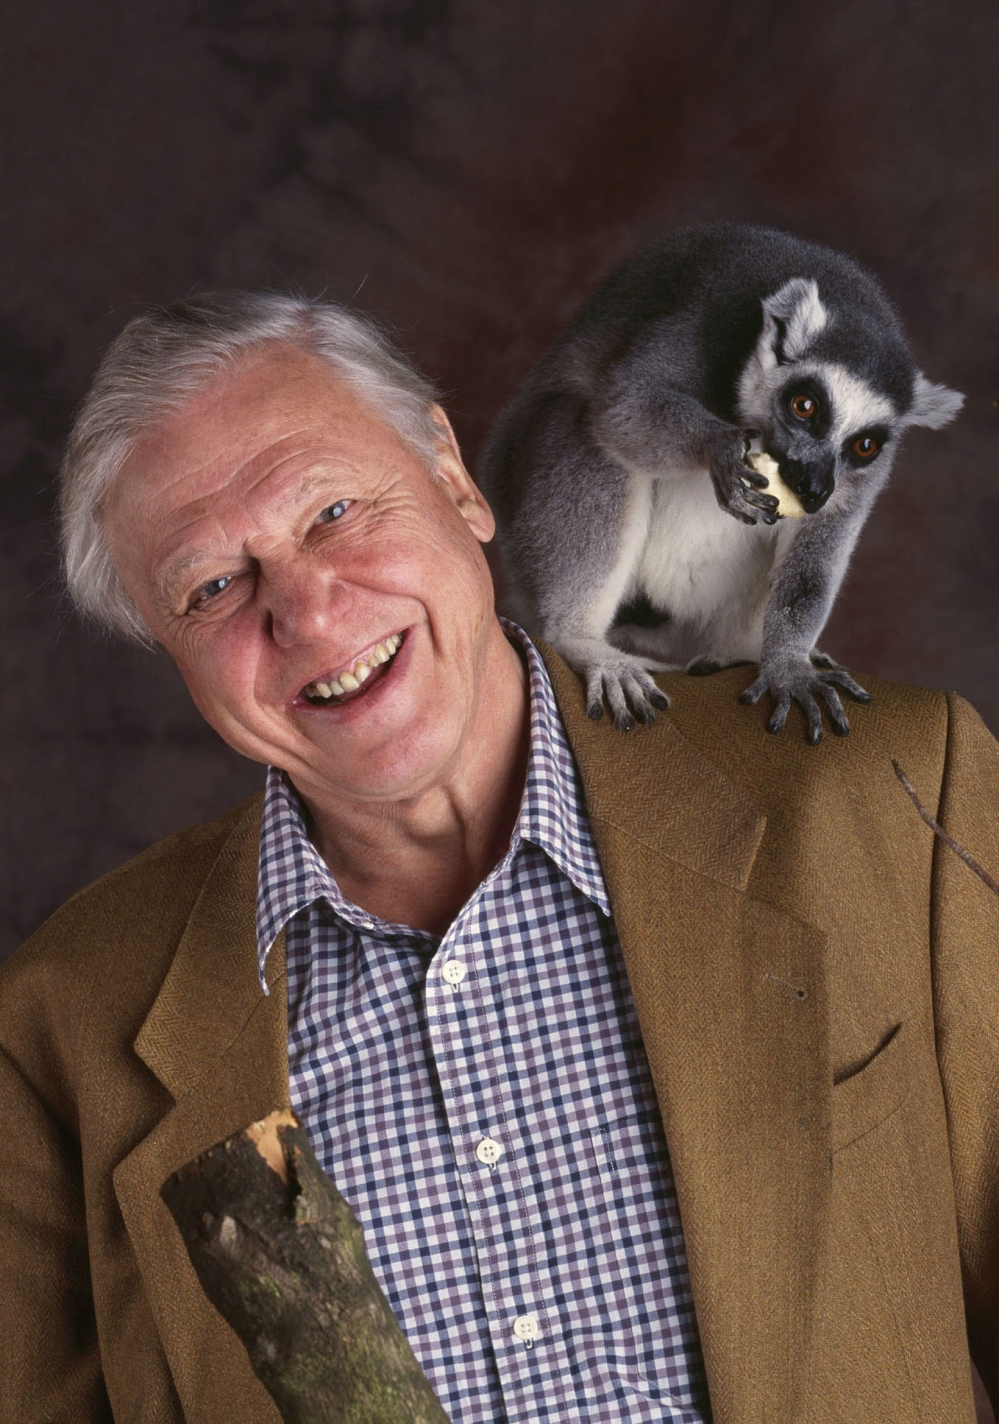 Sir David Attenborough and ring-tailed lemur from The Life of Mammals 2002.